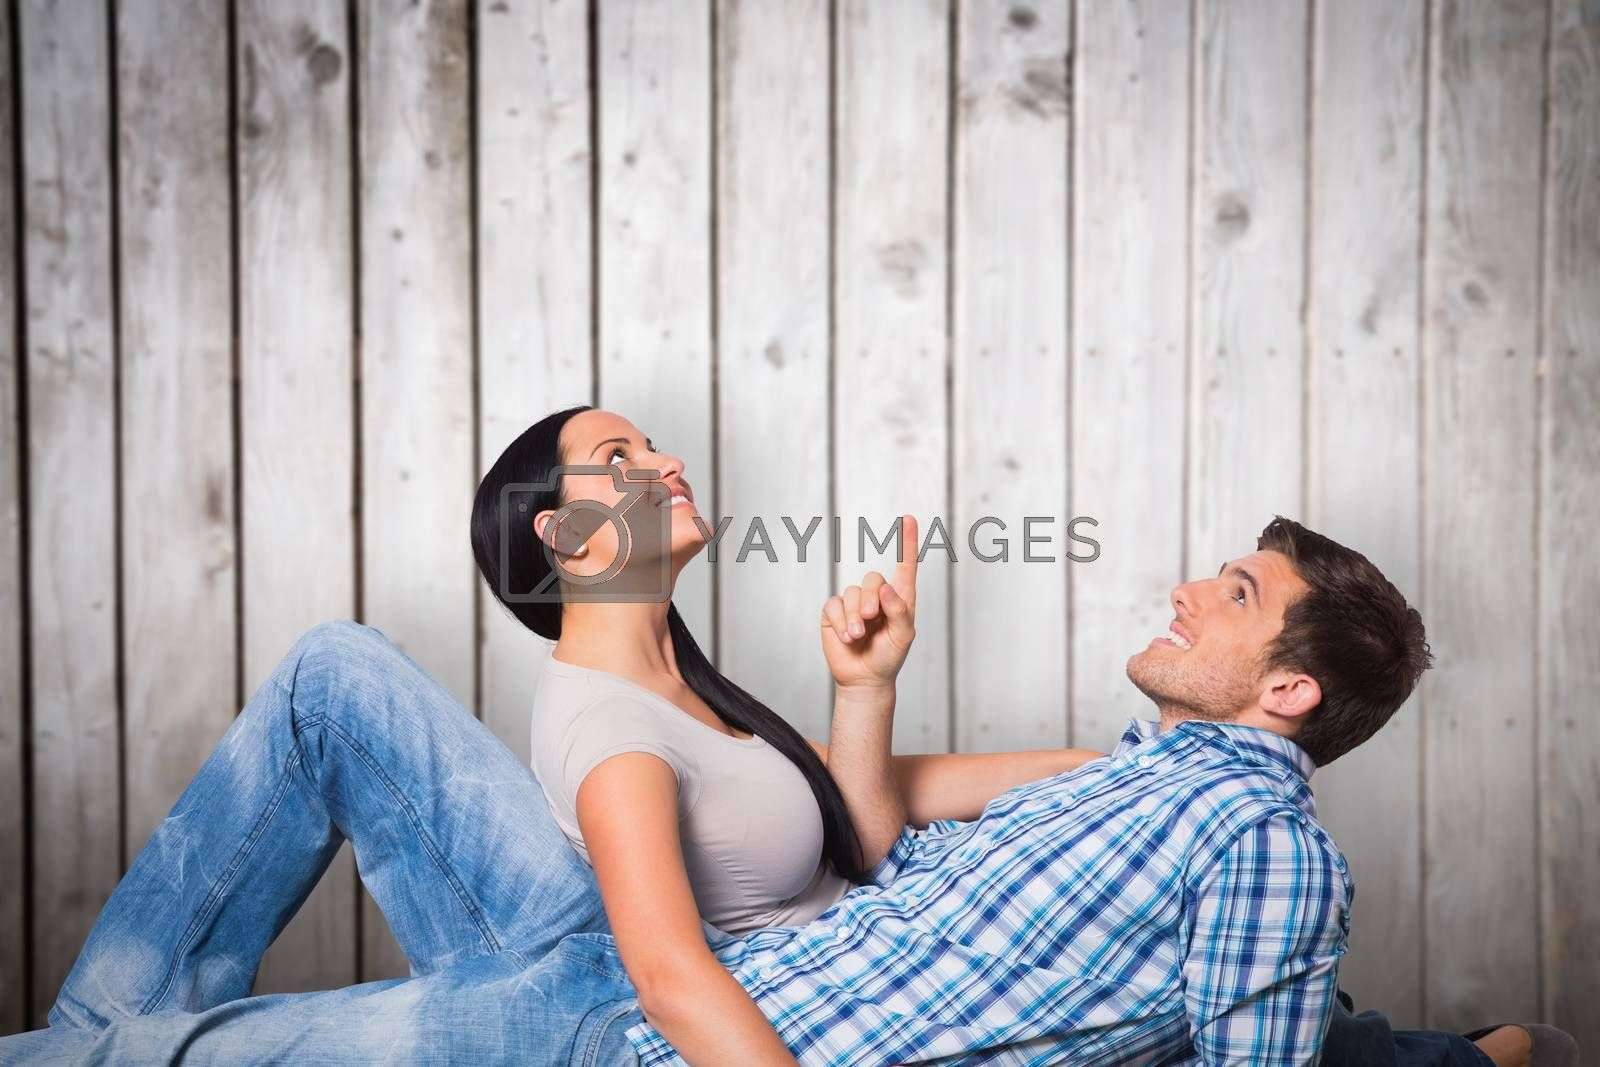 Young couple lying on floor smiling against wooden planks